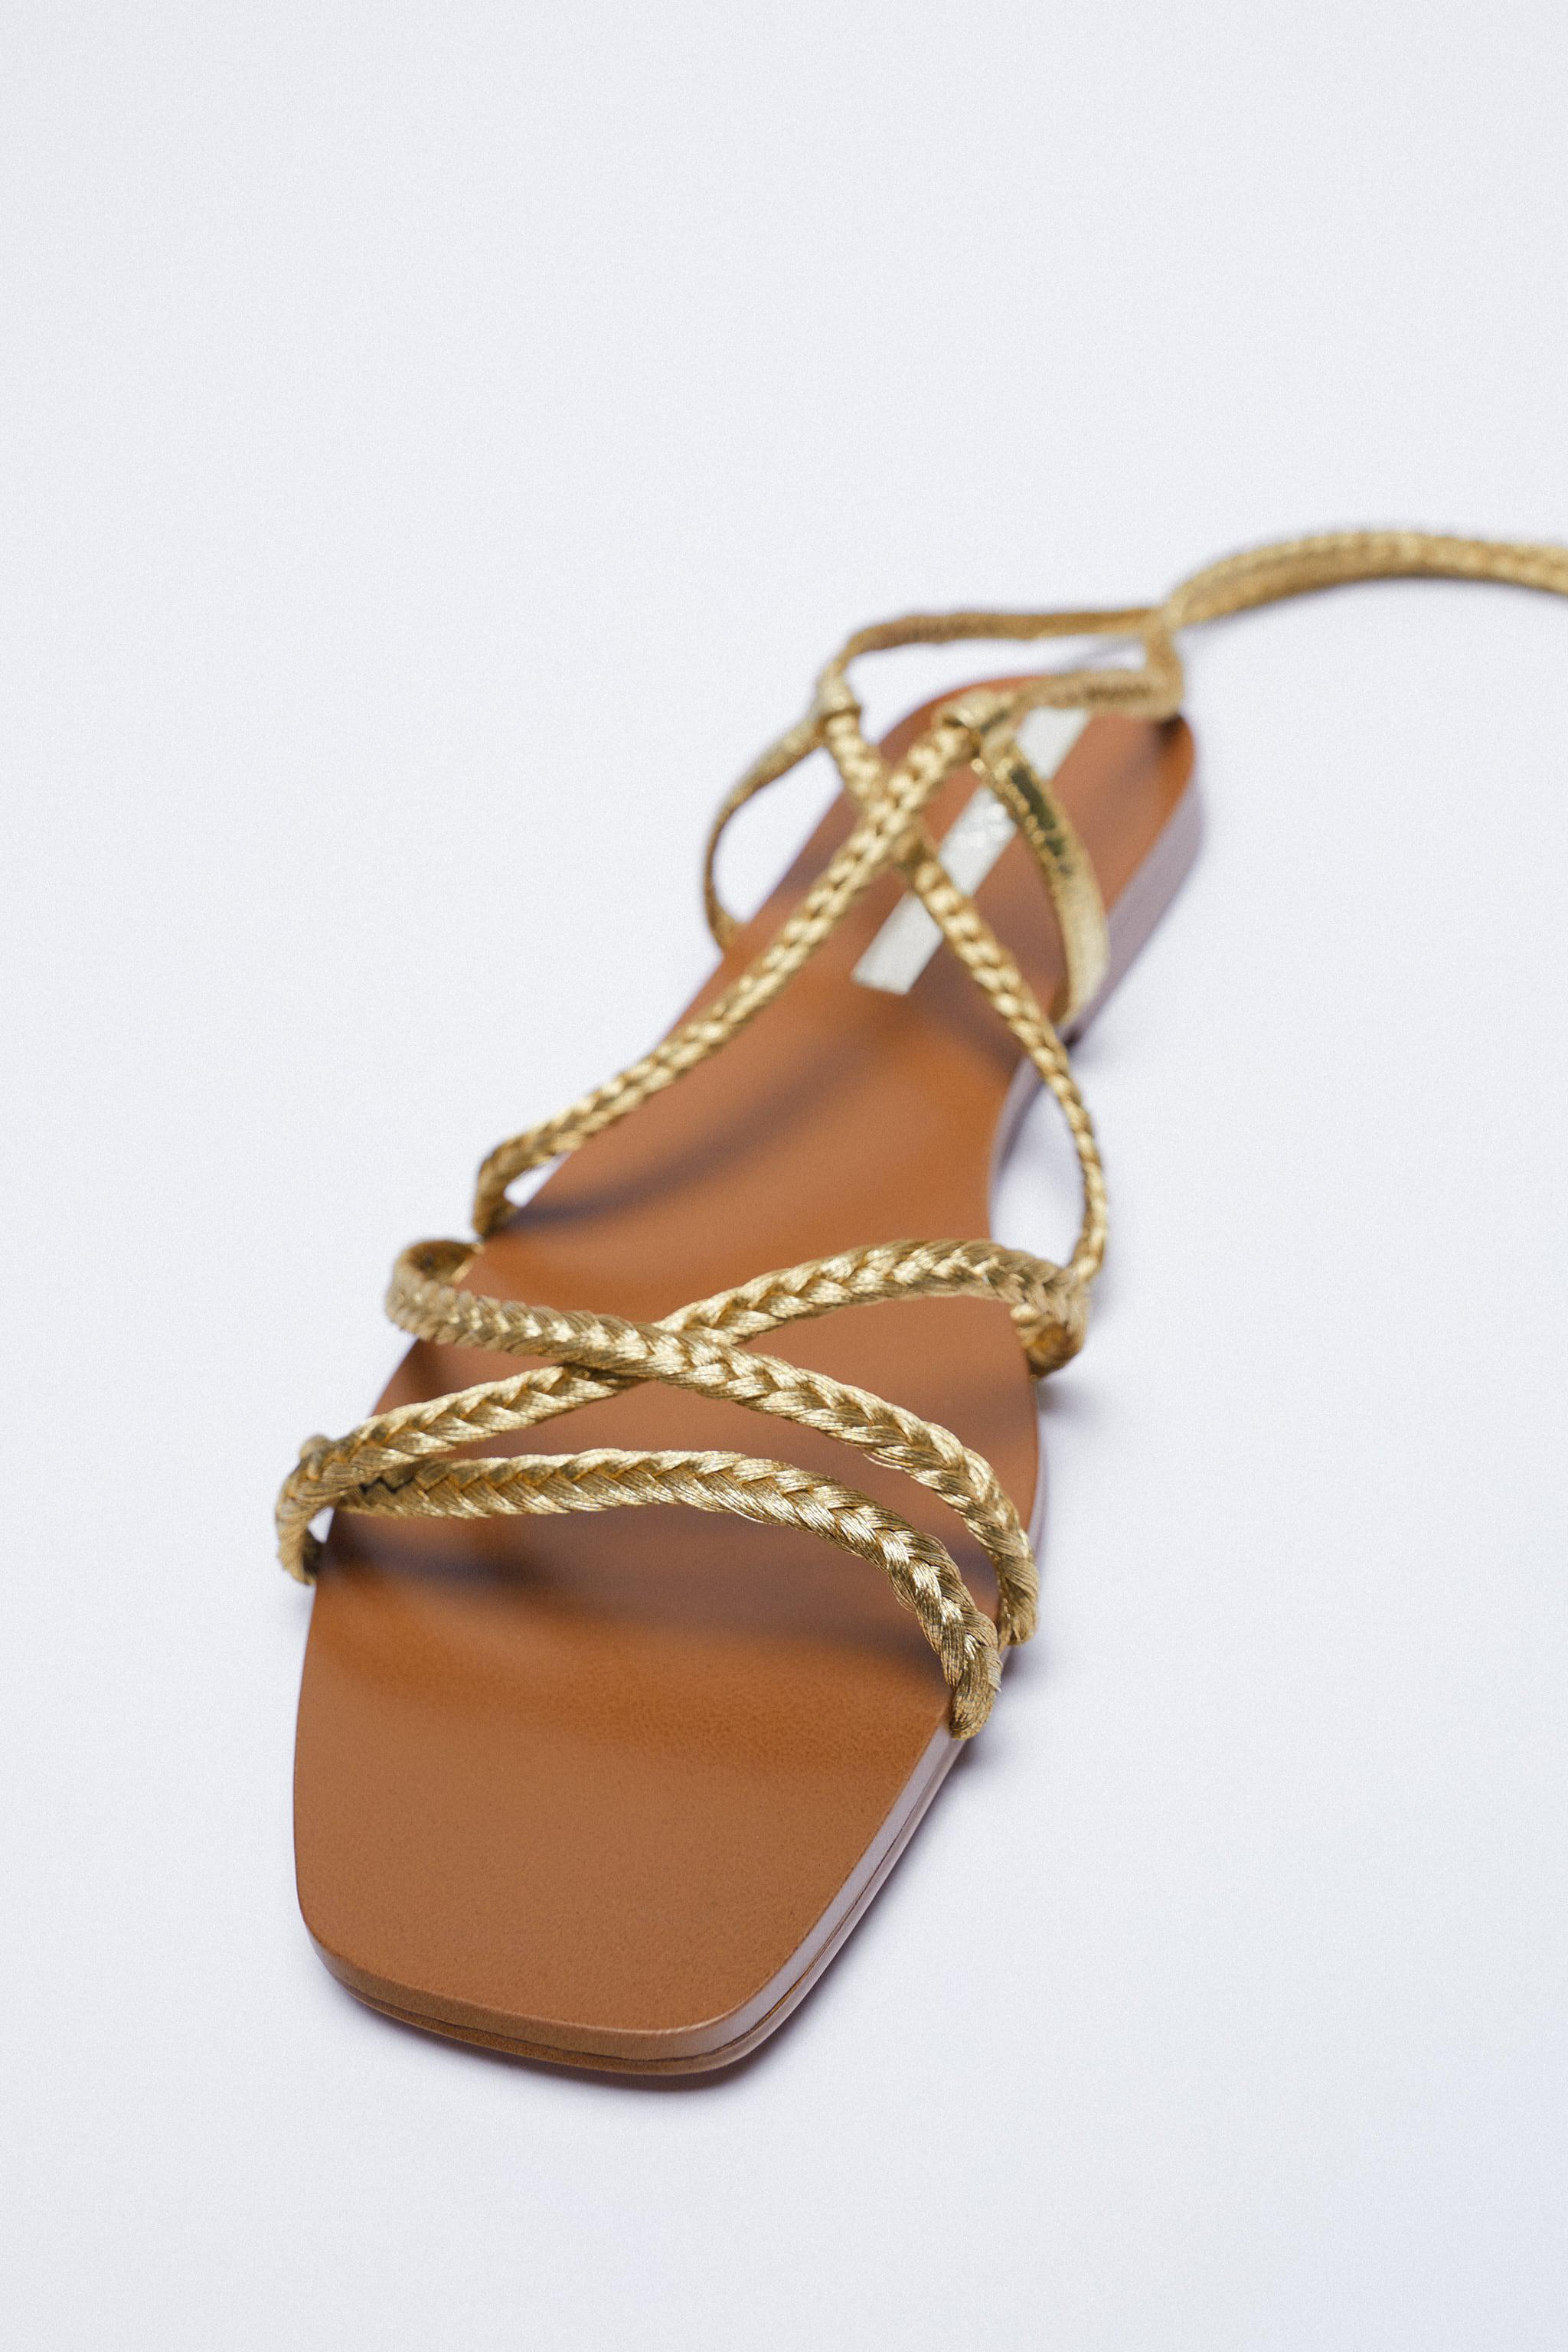 LOW HEEL WOVEN METALLIC SANDALS WITH TIED ANKLE 2